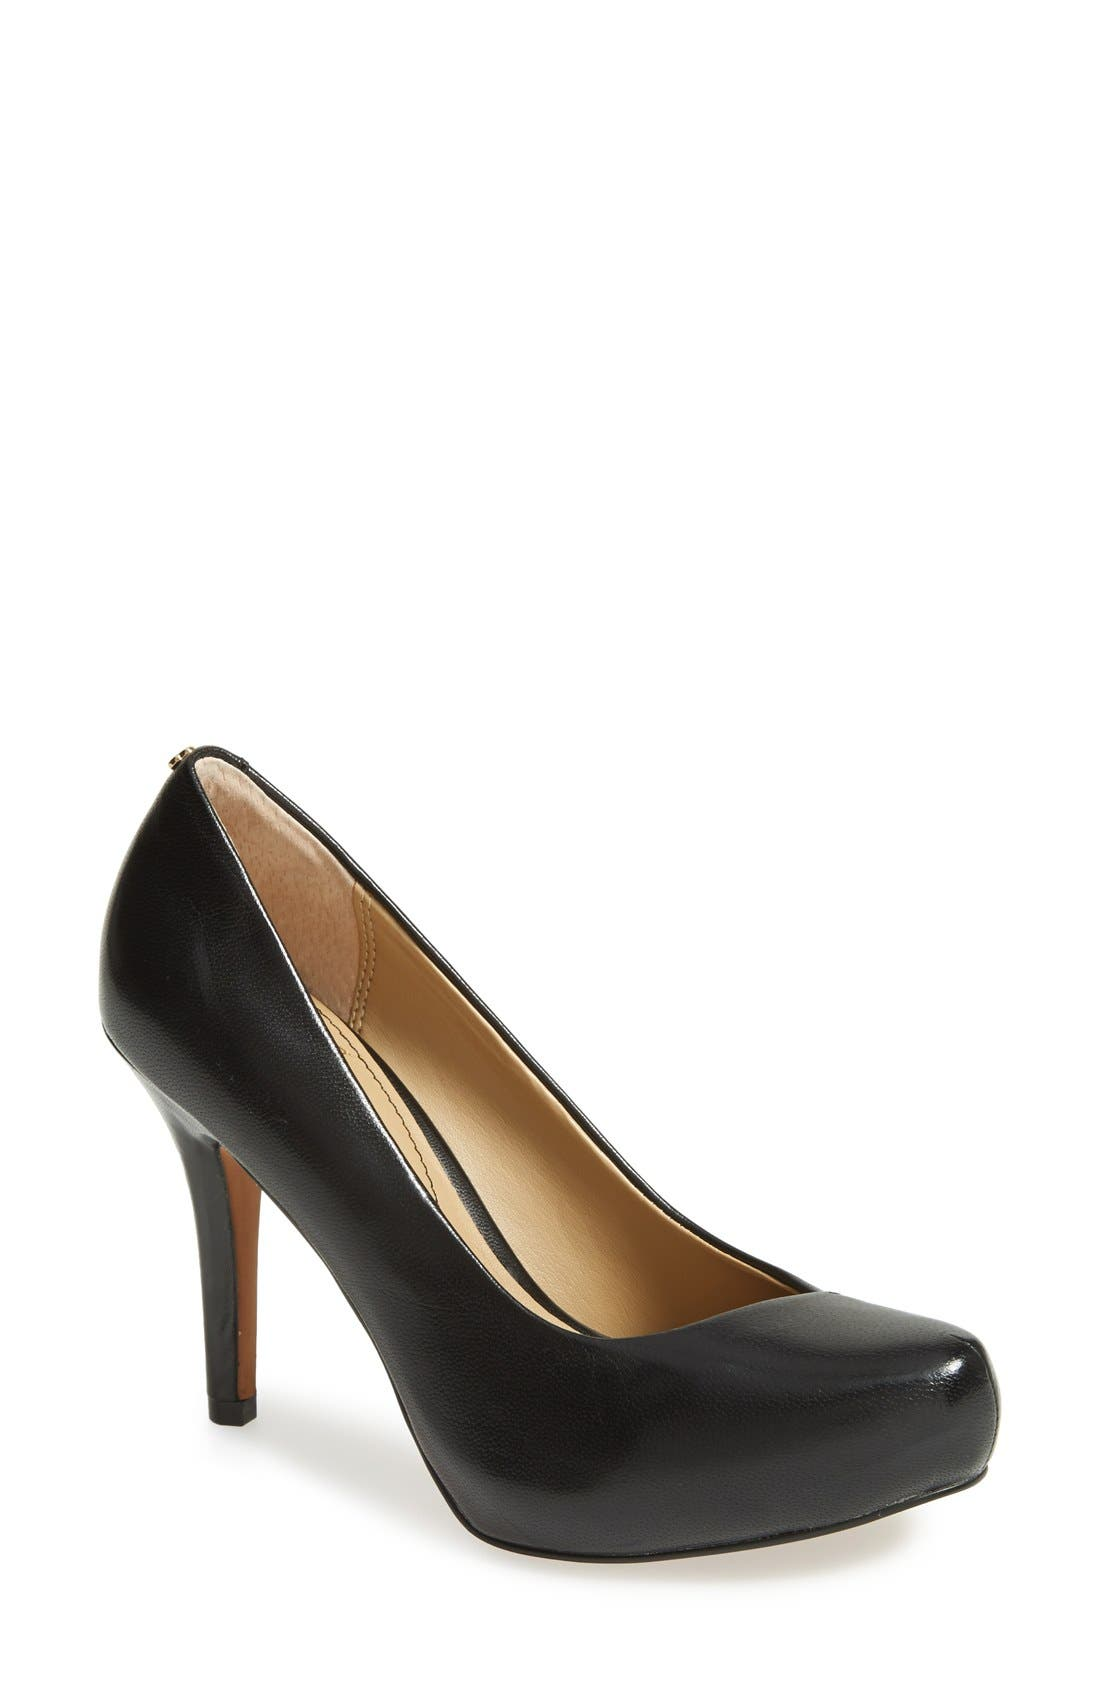 'Cagney' Platform Pump,                         Main,                         color, 001